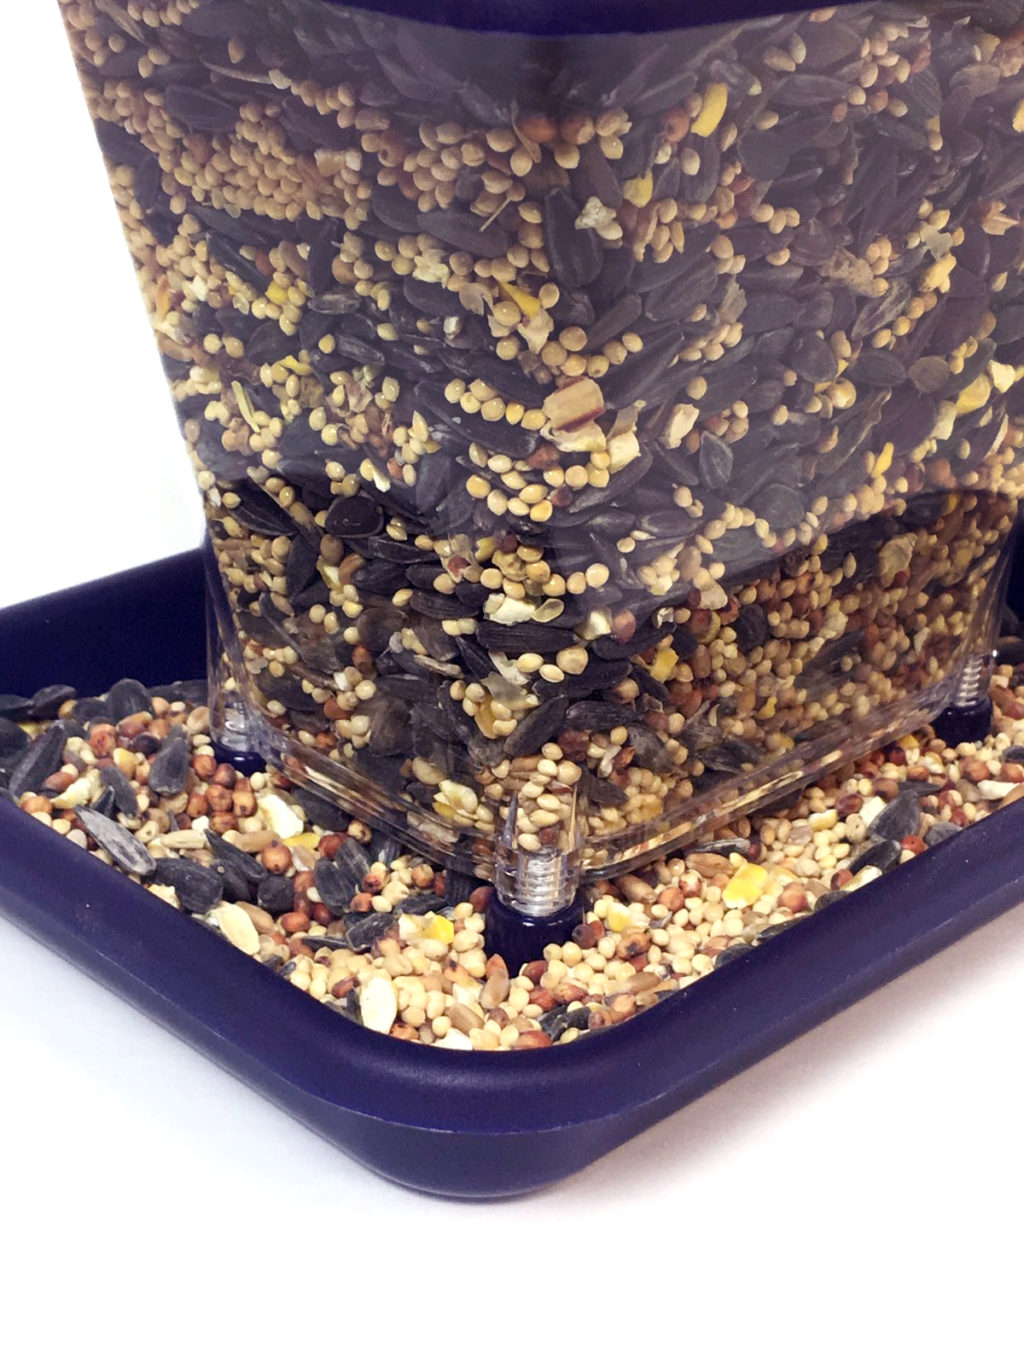 close-up of Stokes Select ranch feeder base filled with bird seed